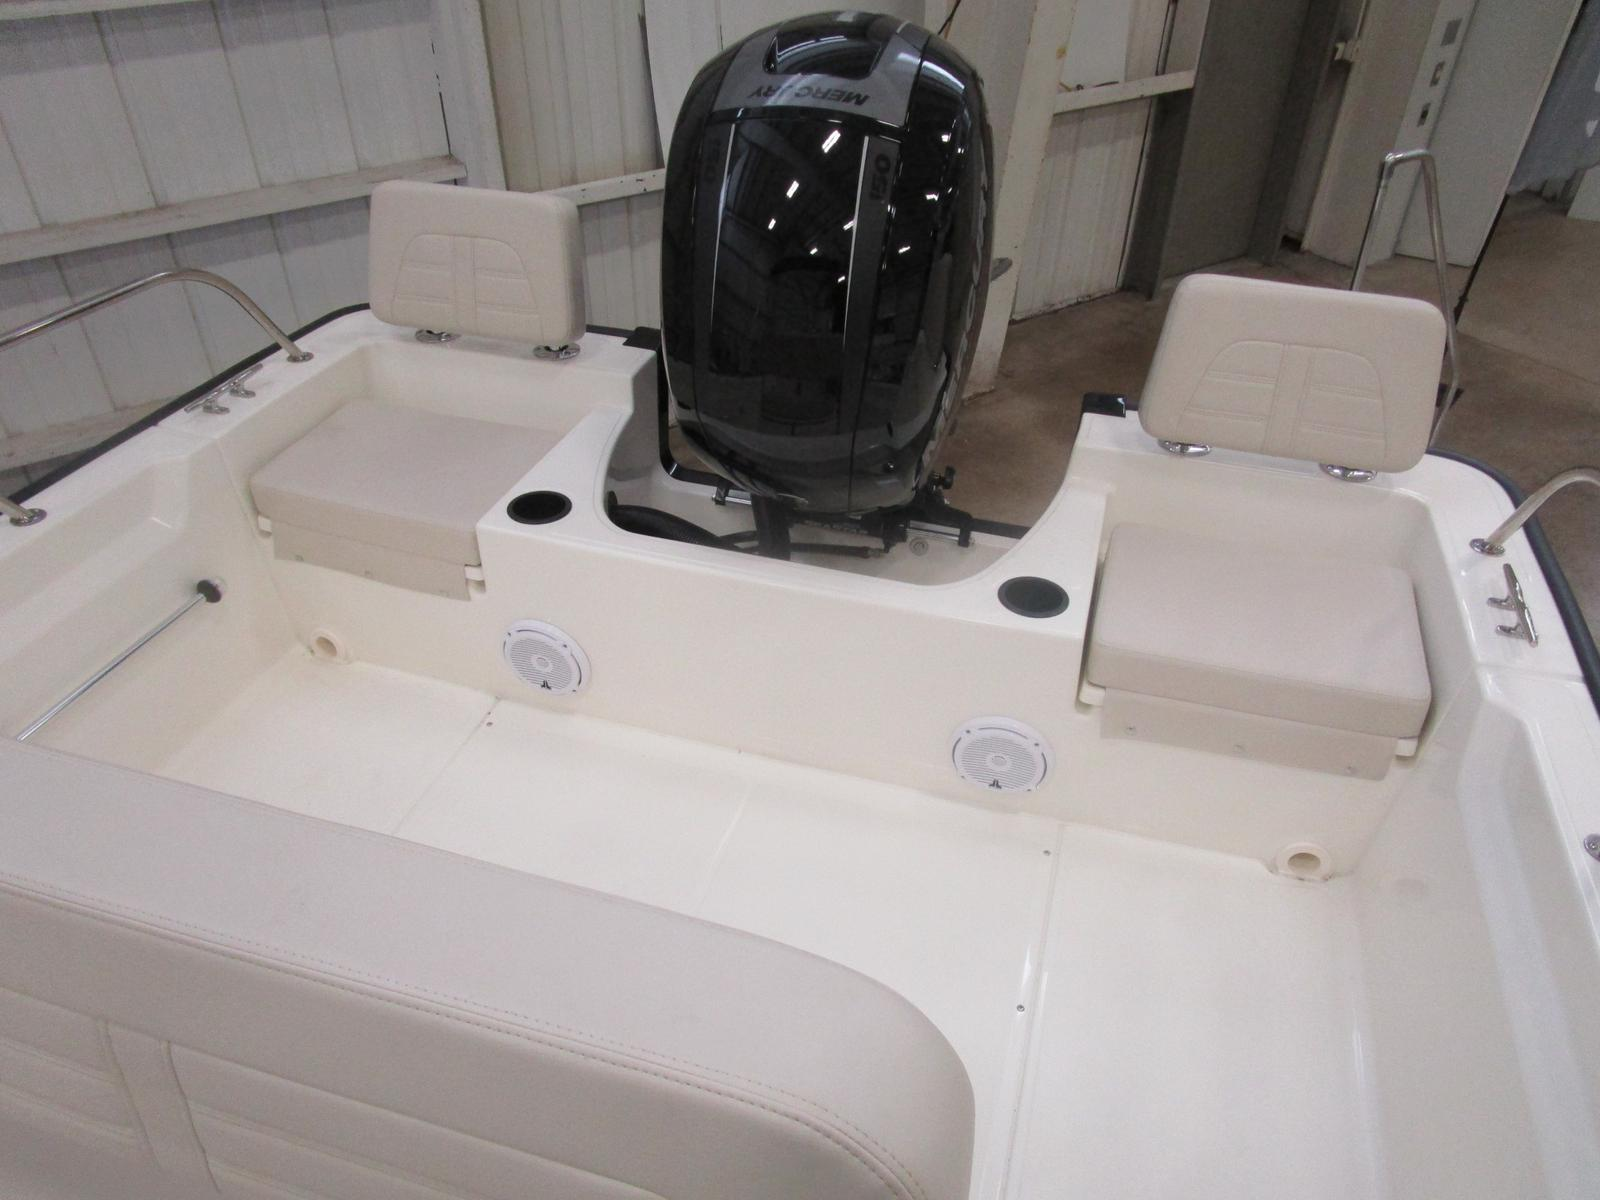 2018 Boston Whaler boat for sale, model of the boat is 190 Montauk & Image # 5 of 5